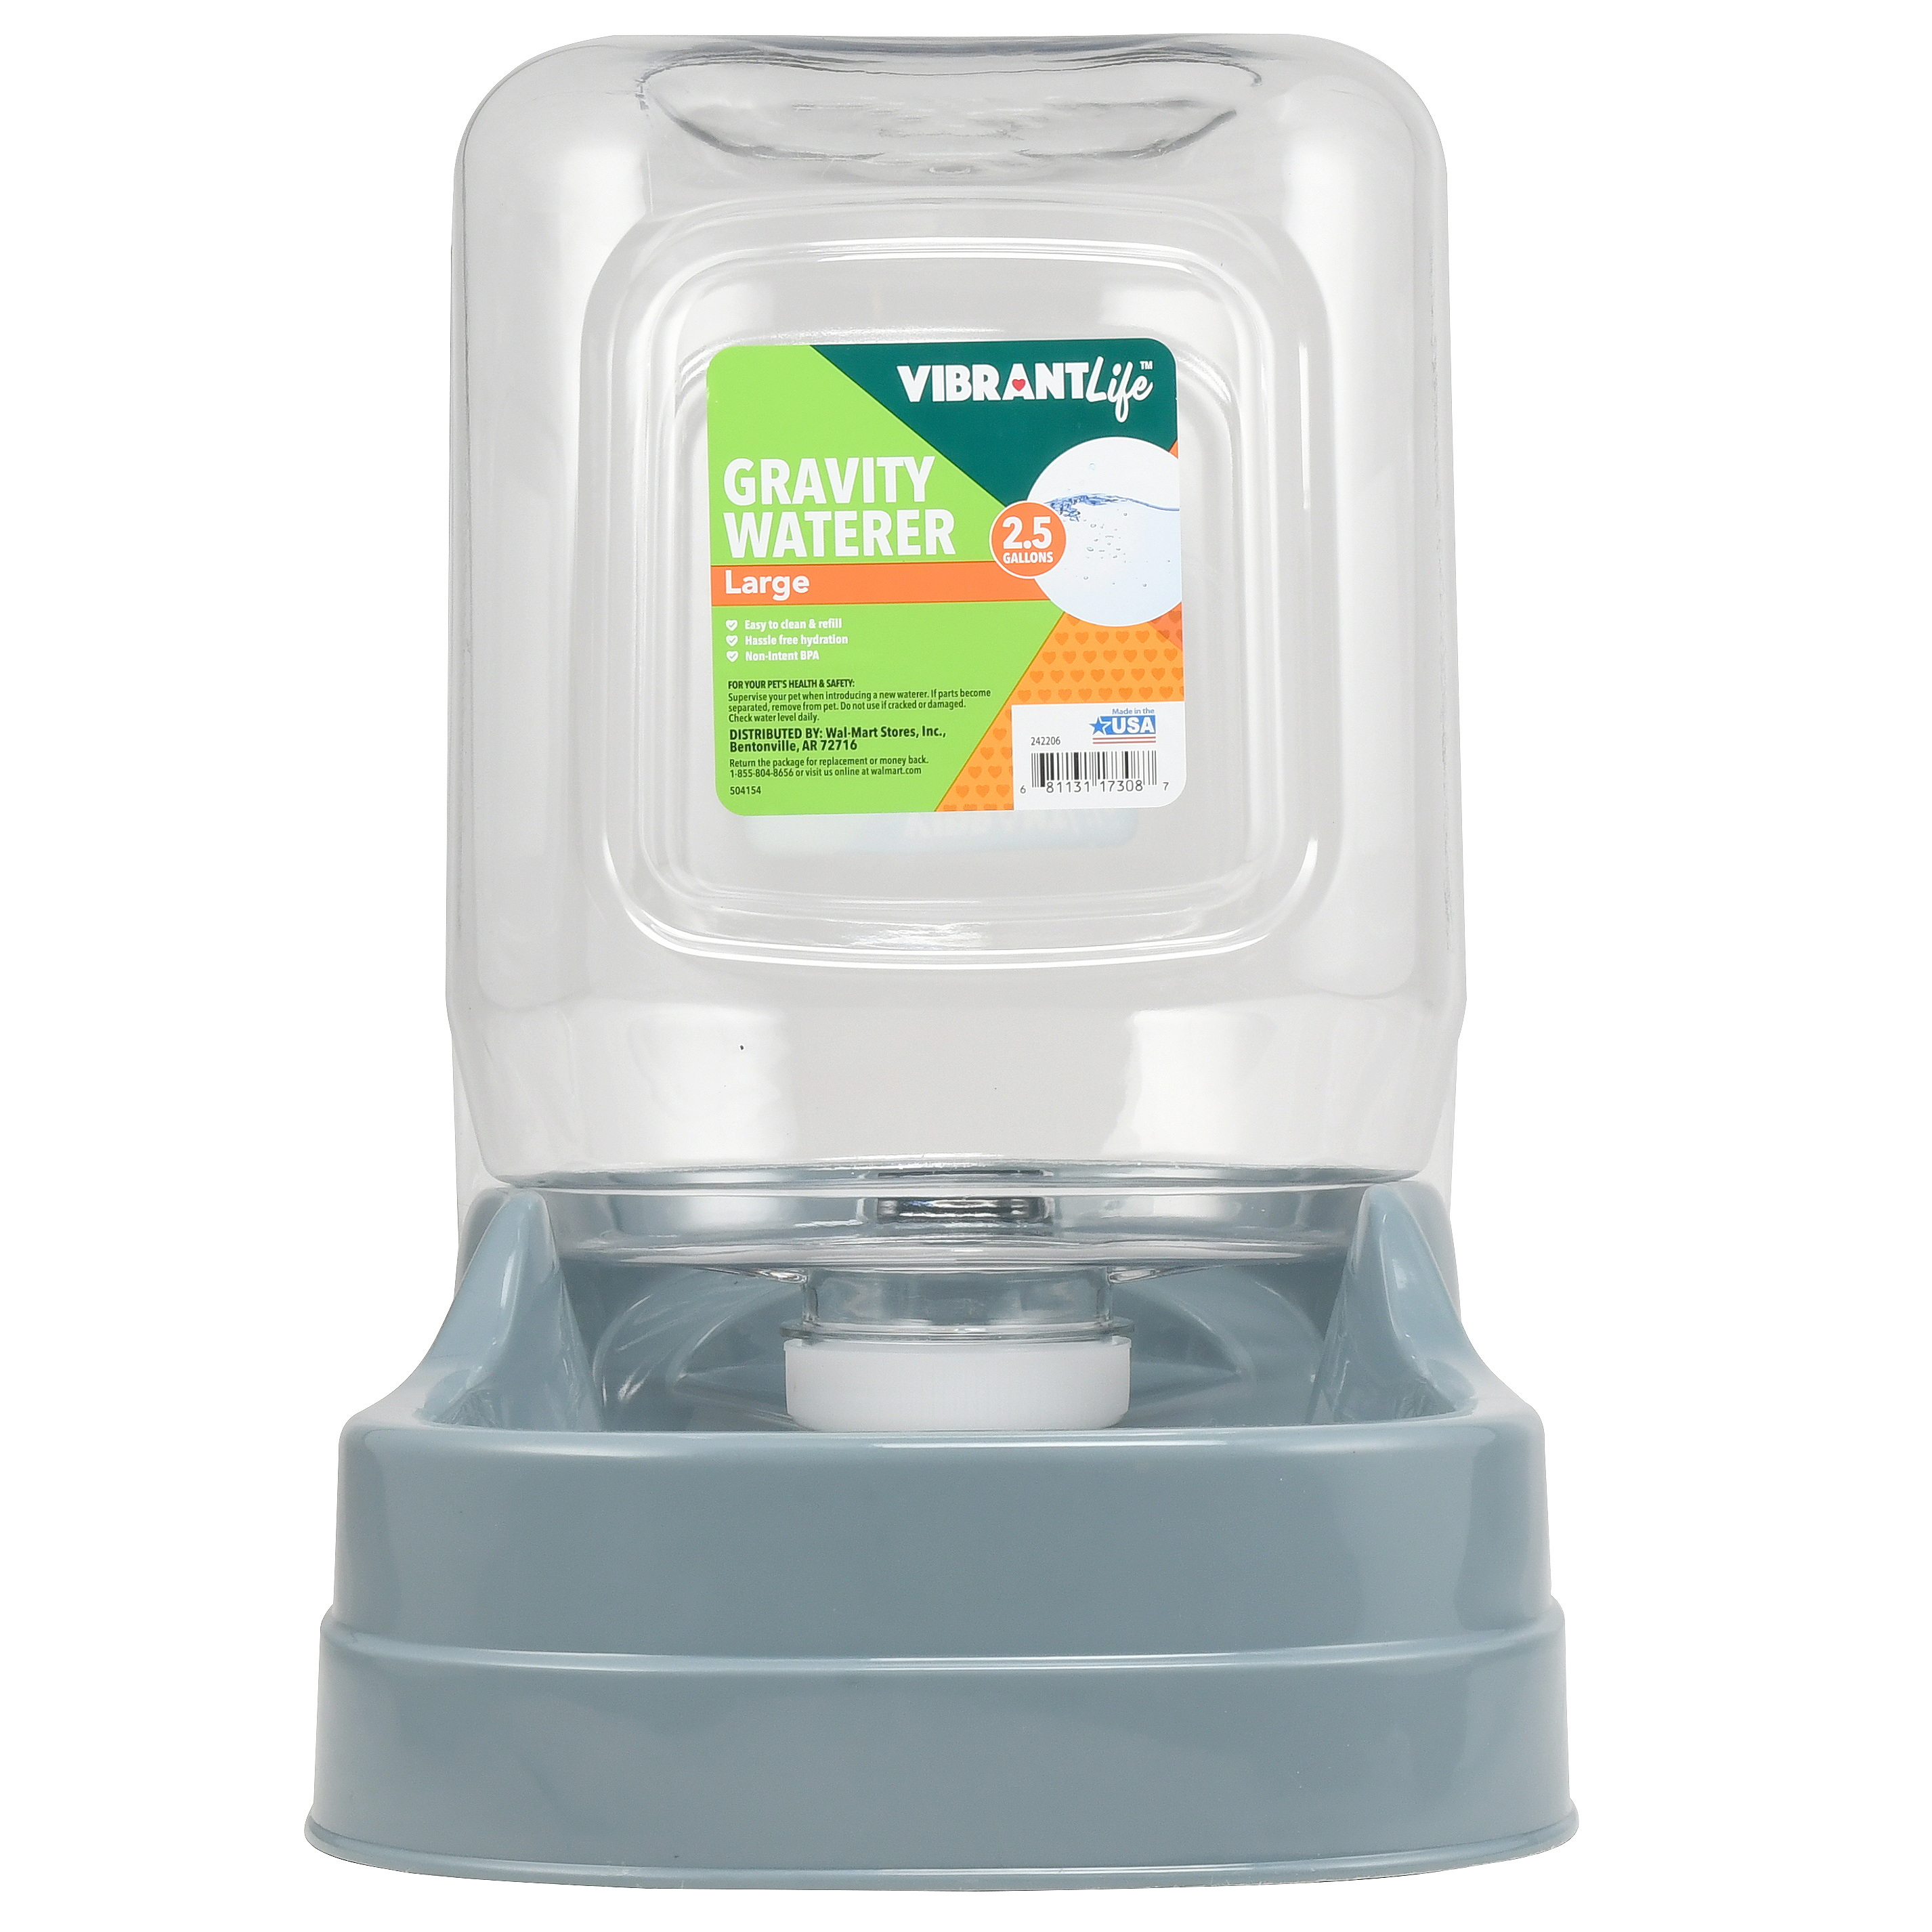 Vibrant Life Gravity Waterer, Large, 2.5 gallons